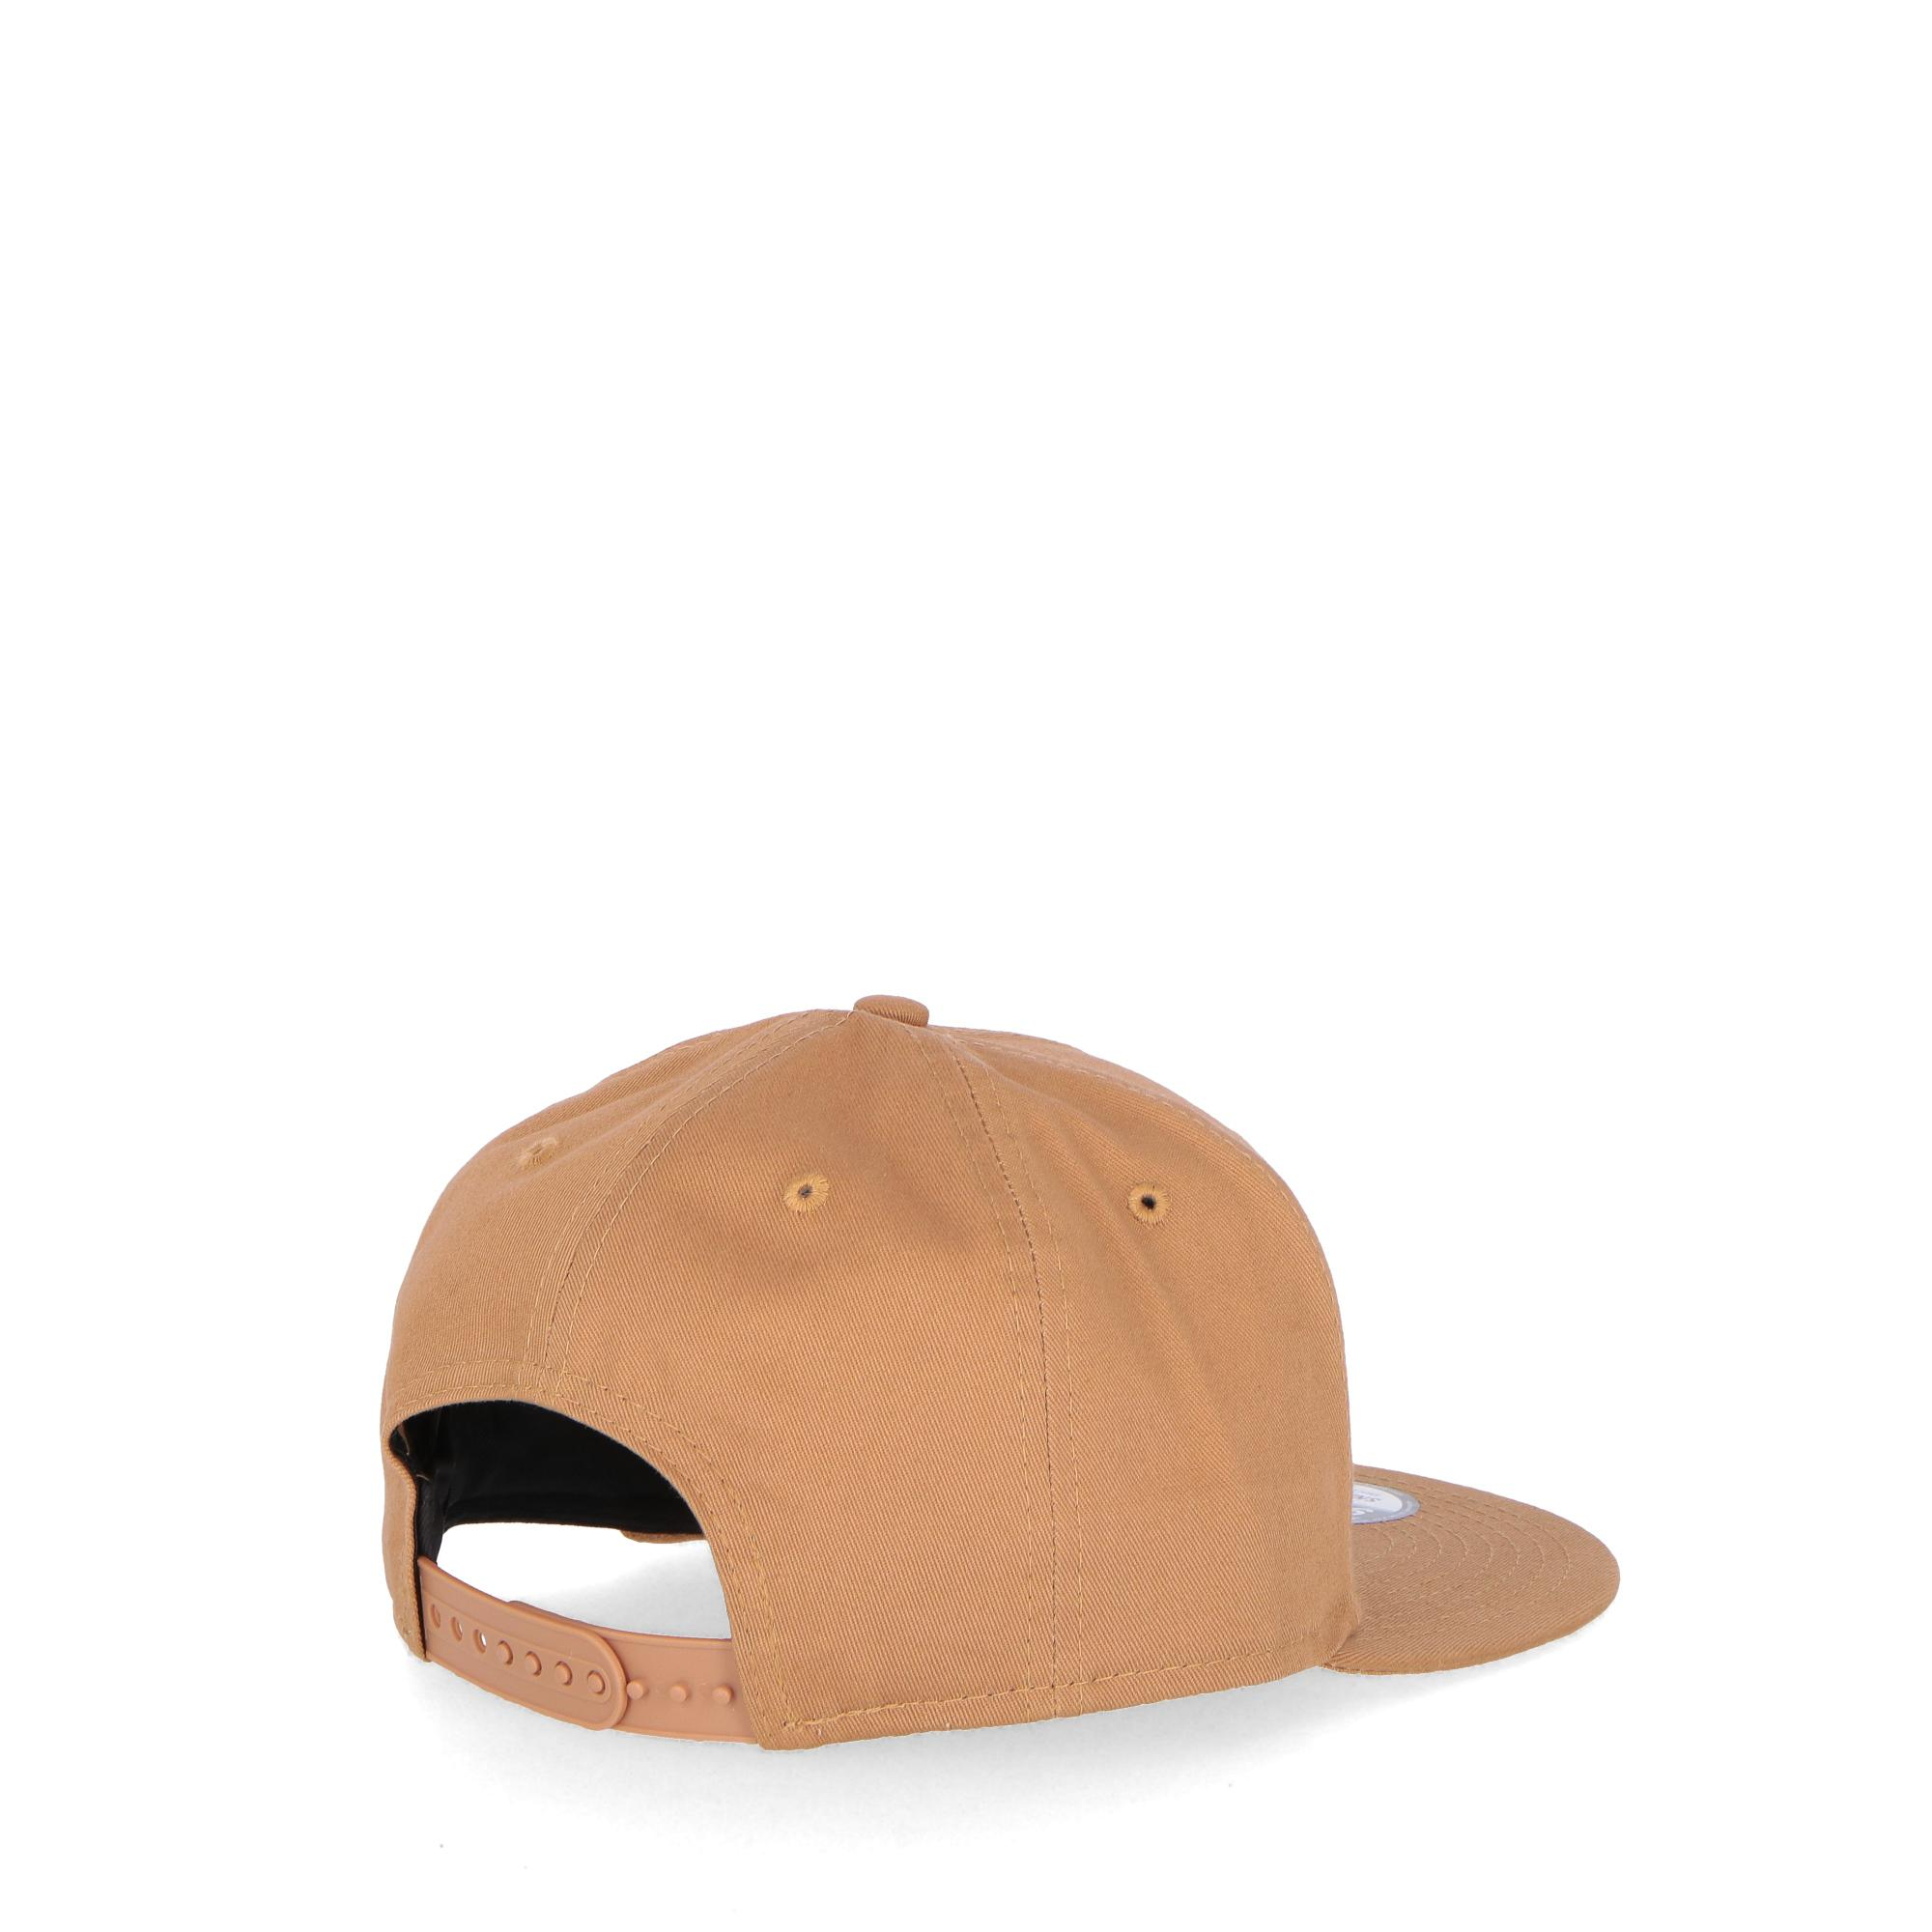 New Era League Essential 9fifty Wheat black